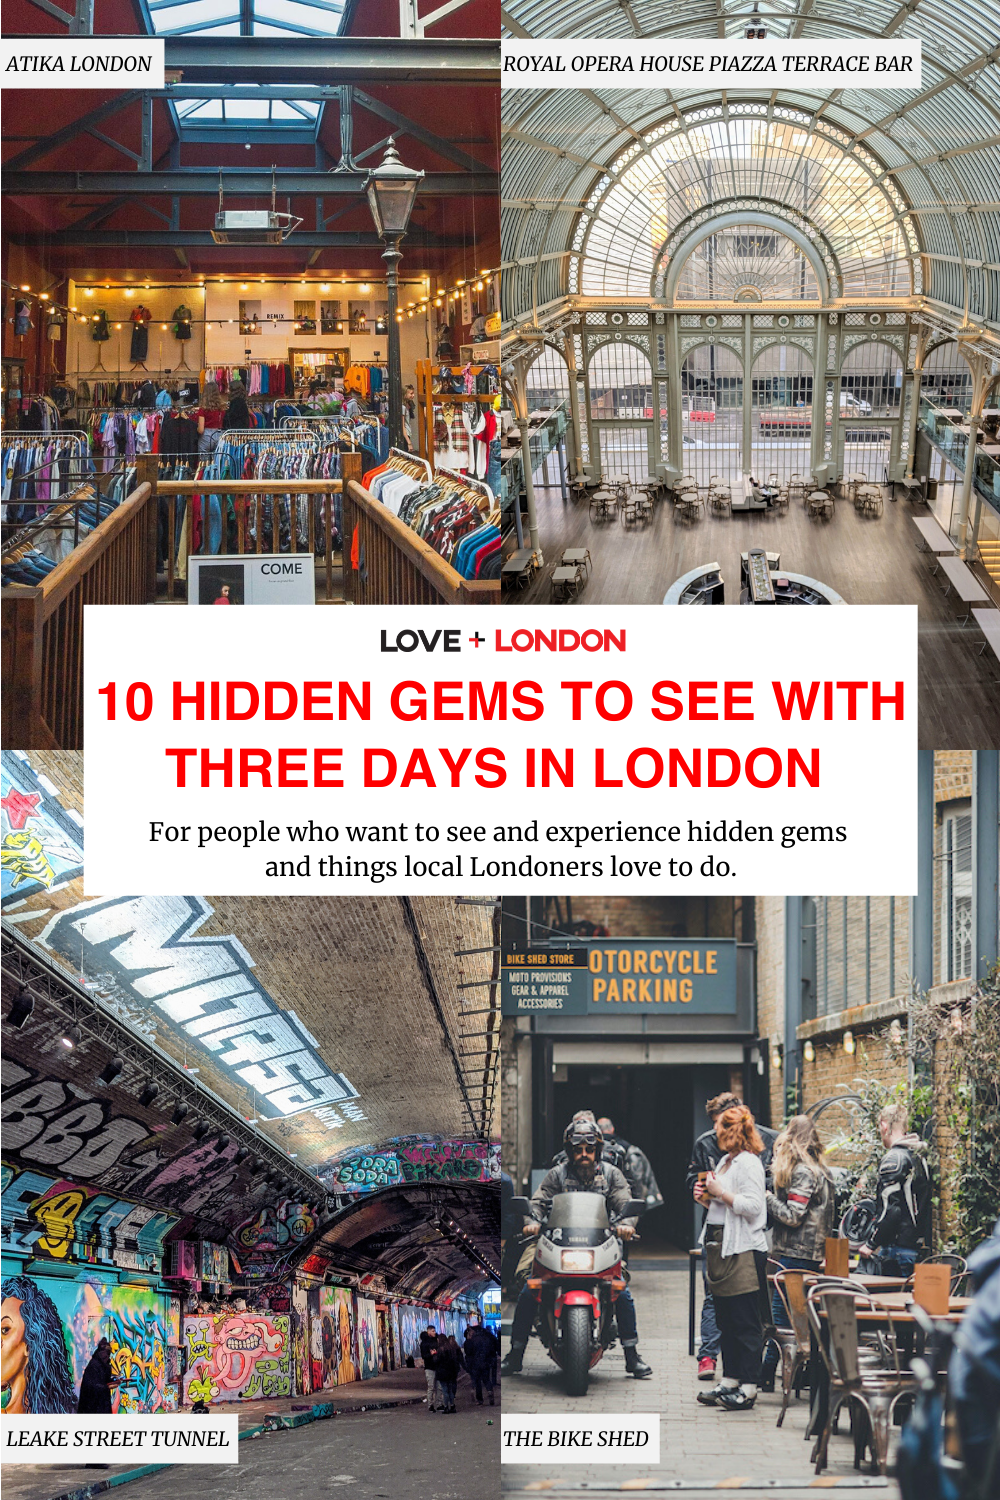 10 Hidden Gems to See with Three Days in London